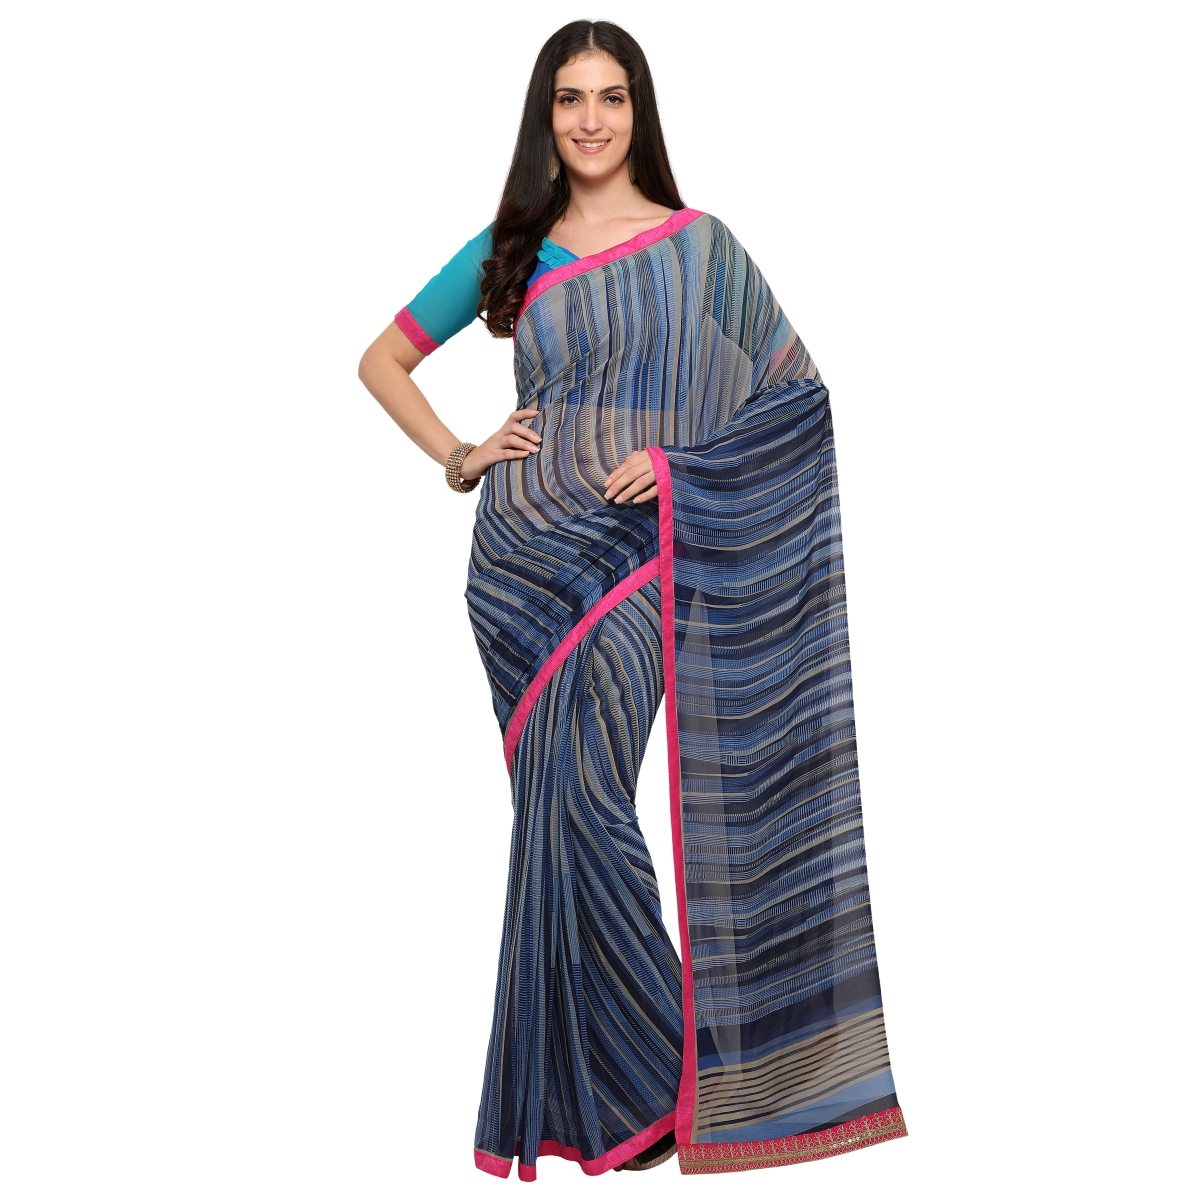 Blue Faux Georgette Everyday Wear Printed Saree.